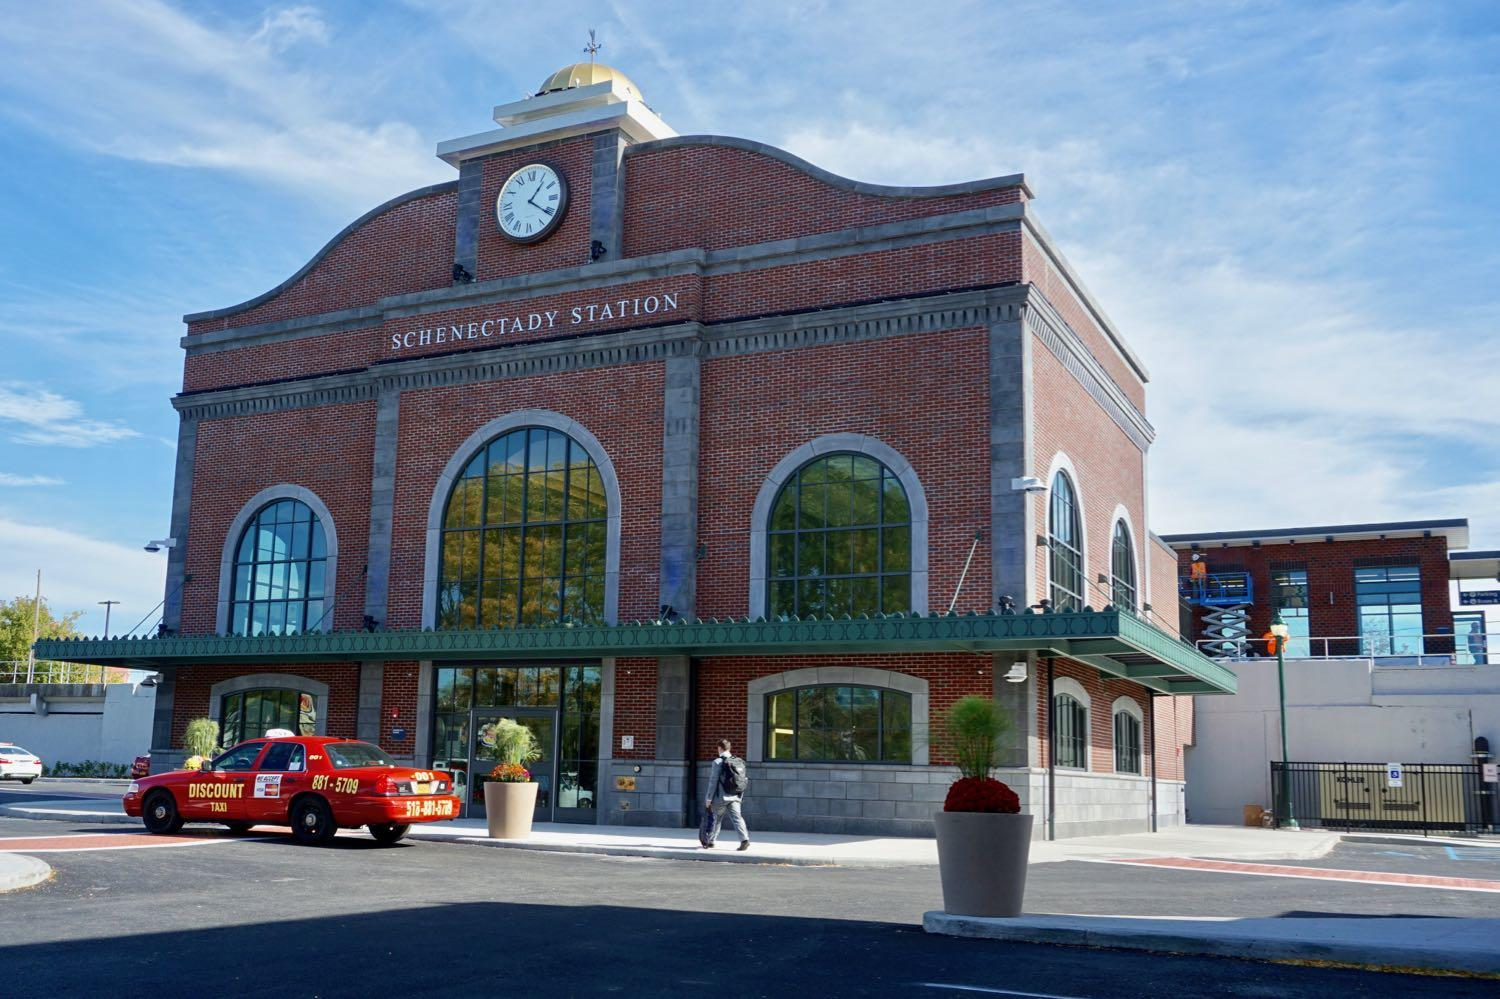 new_Schenectady_train_station__1.jpg